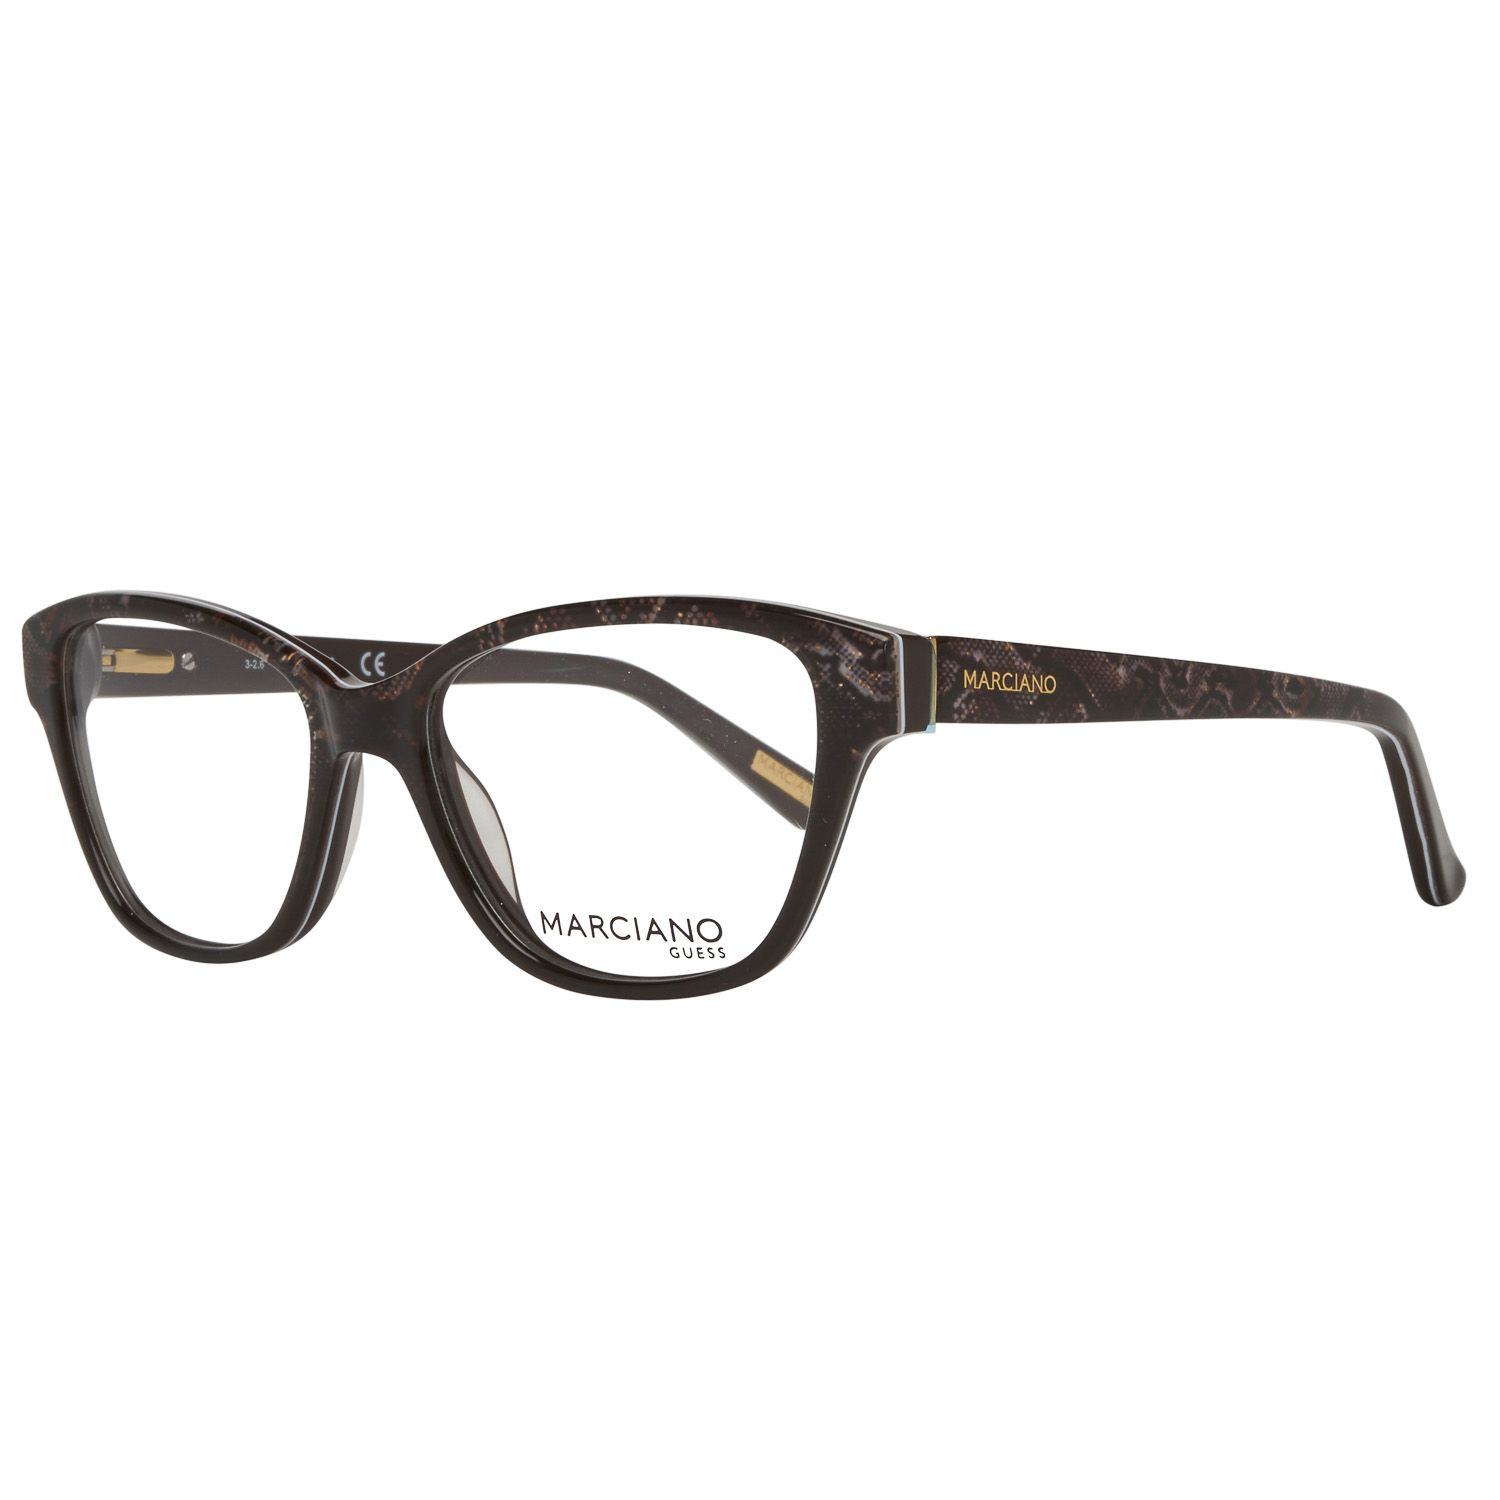 Guess by Marciano Optical Frame GM0280 050 51 Women Black